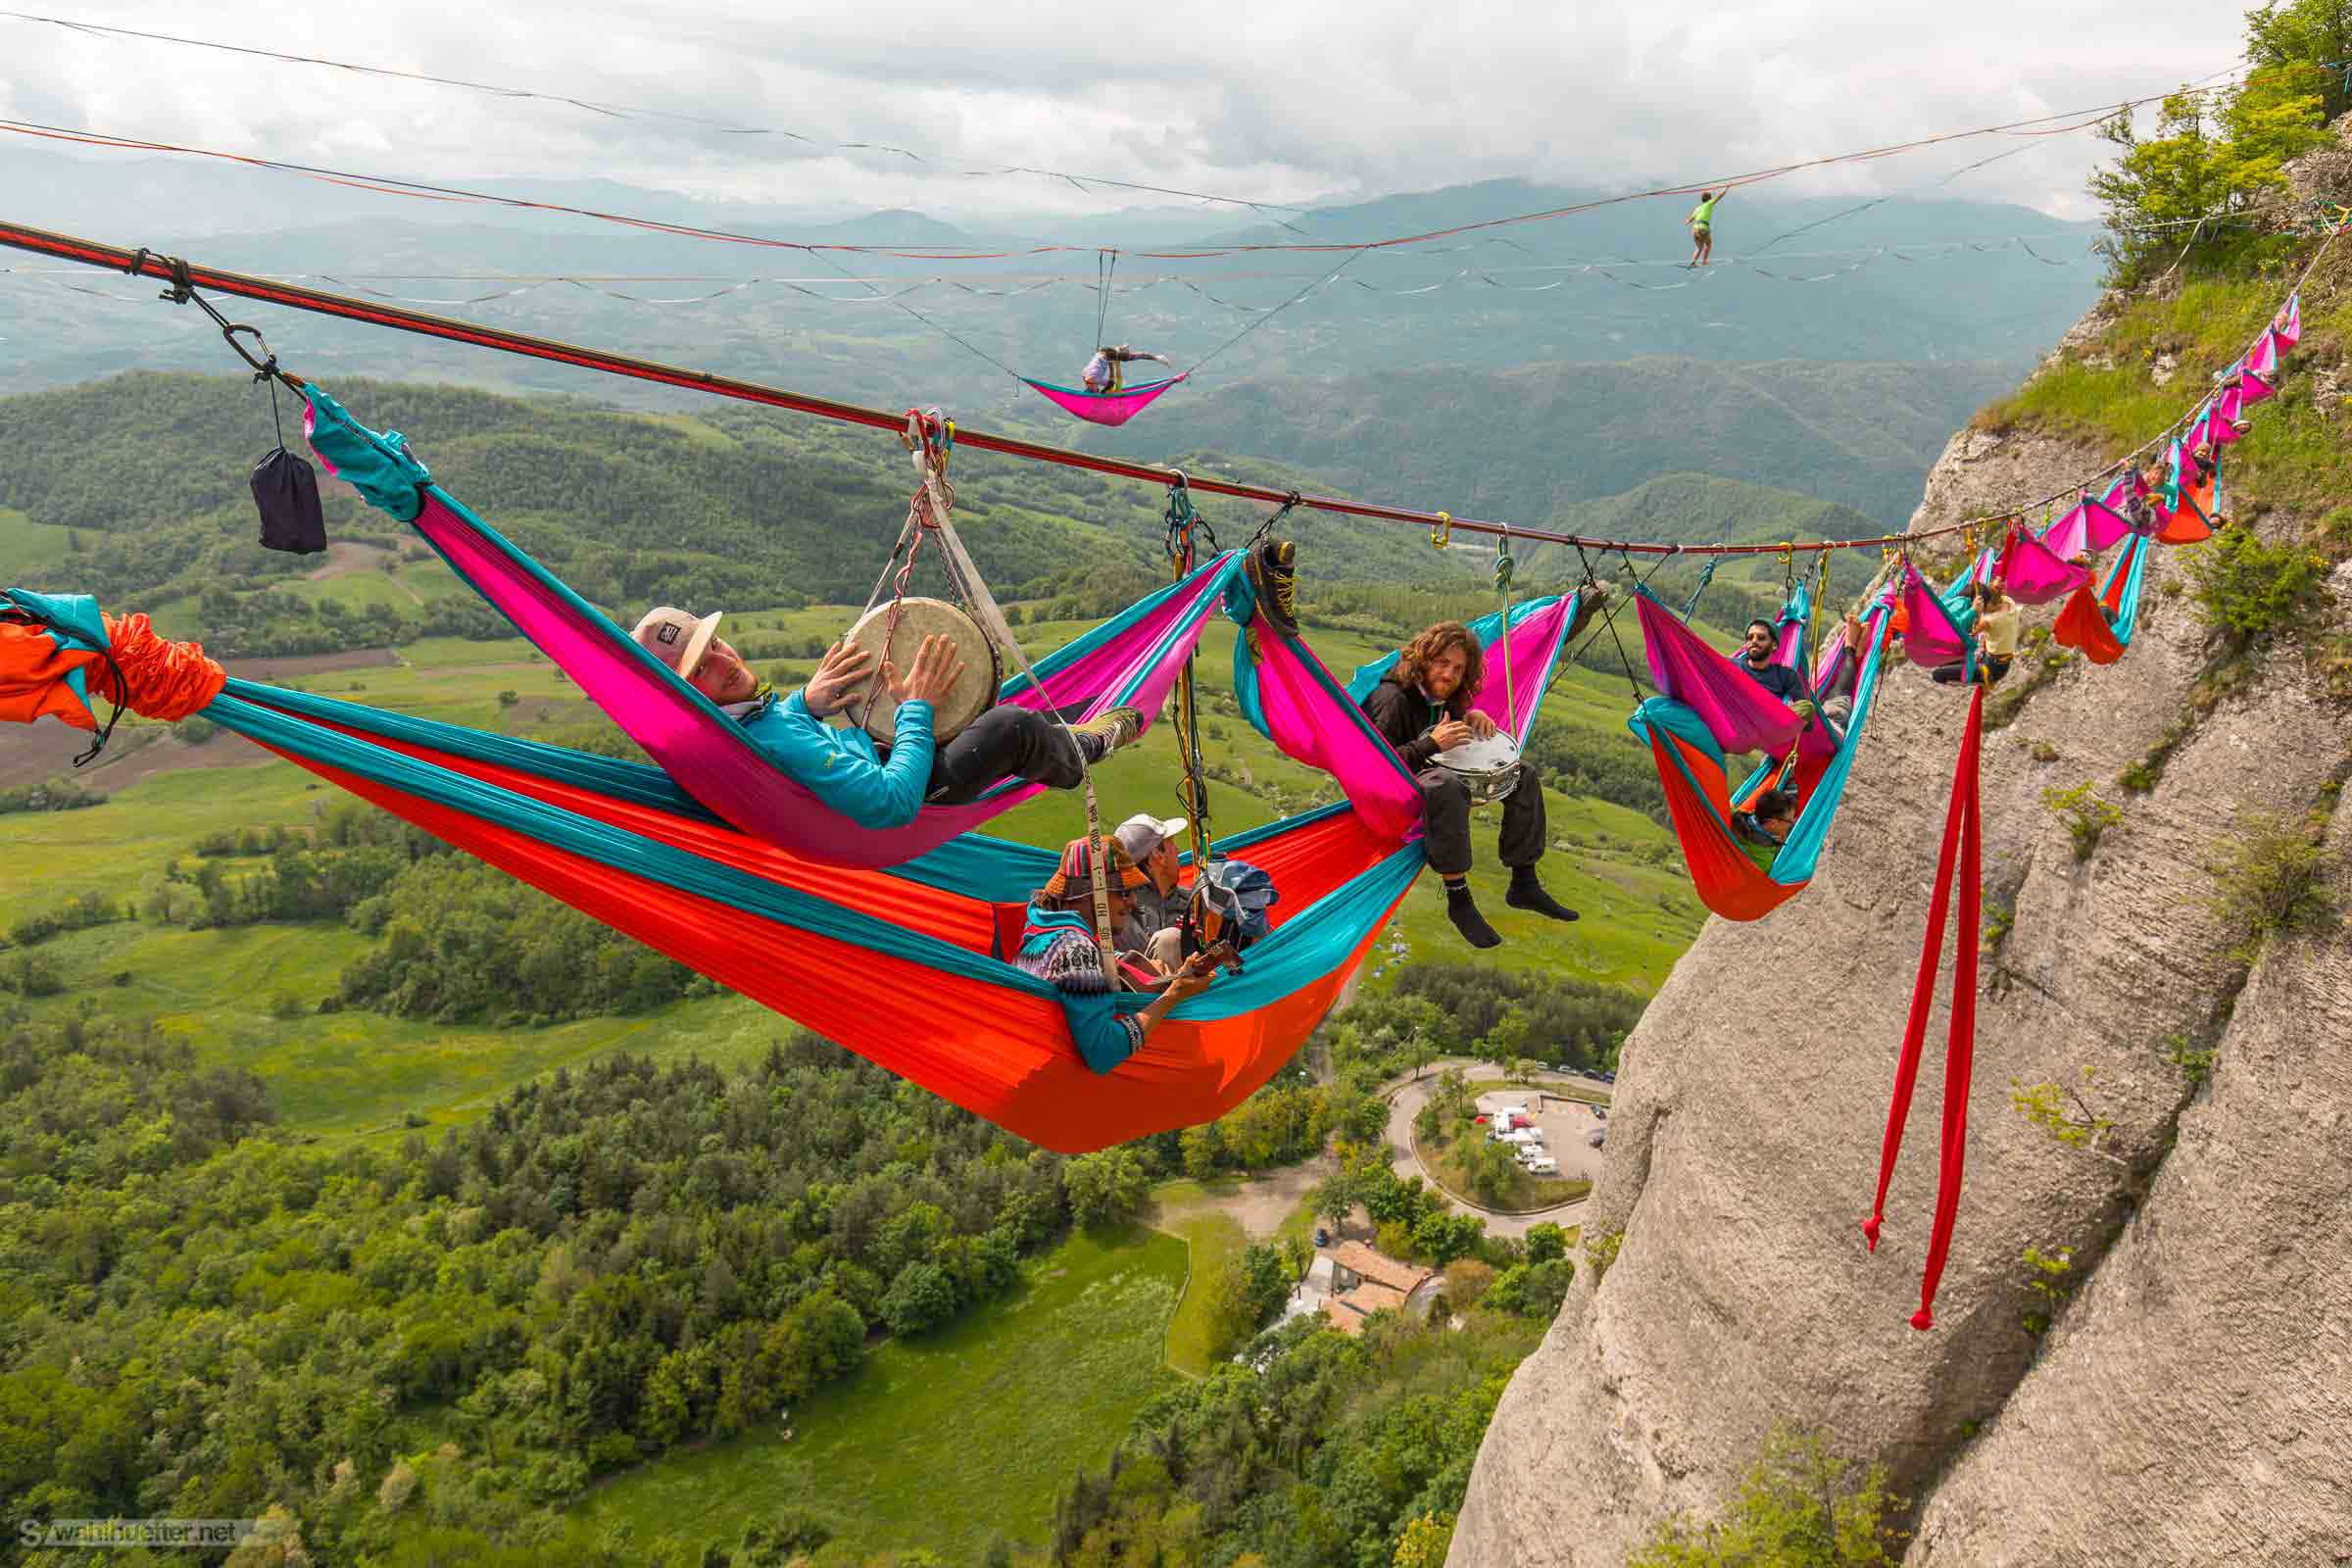 CUSTOM-MADE PARACHUTE HAMMOCKS